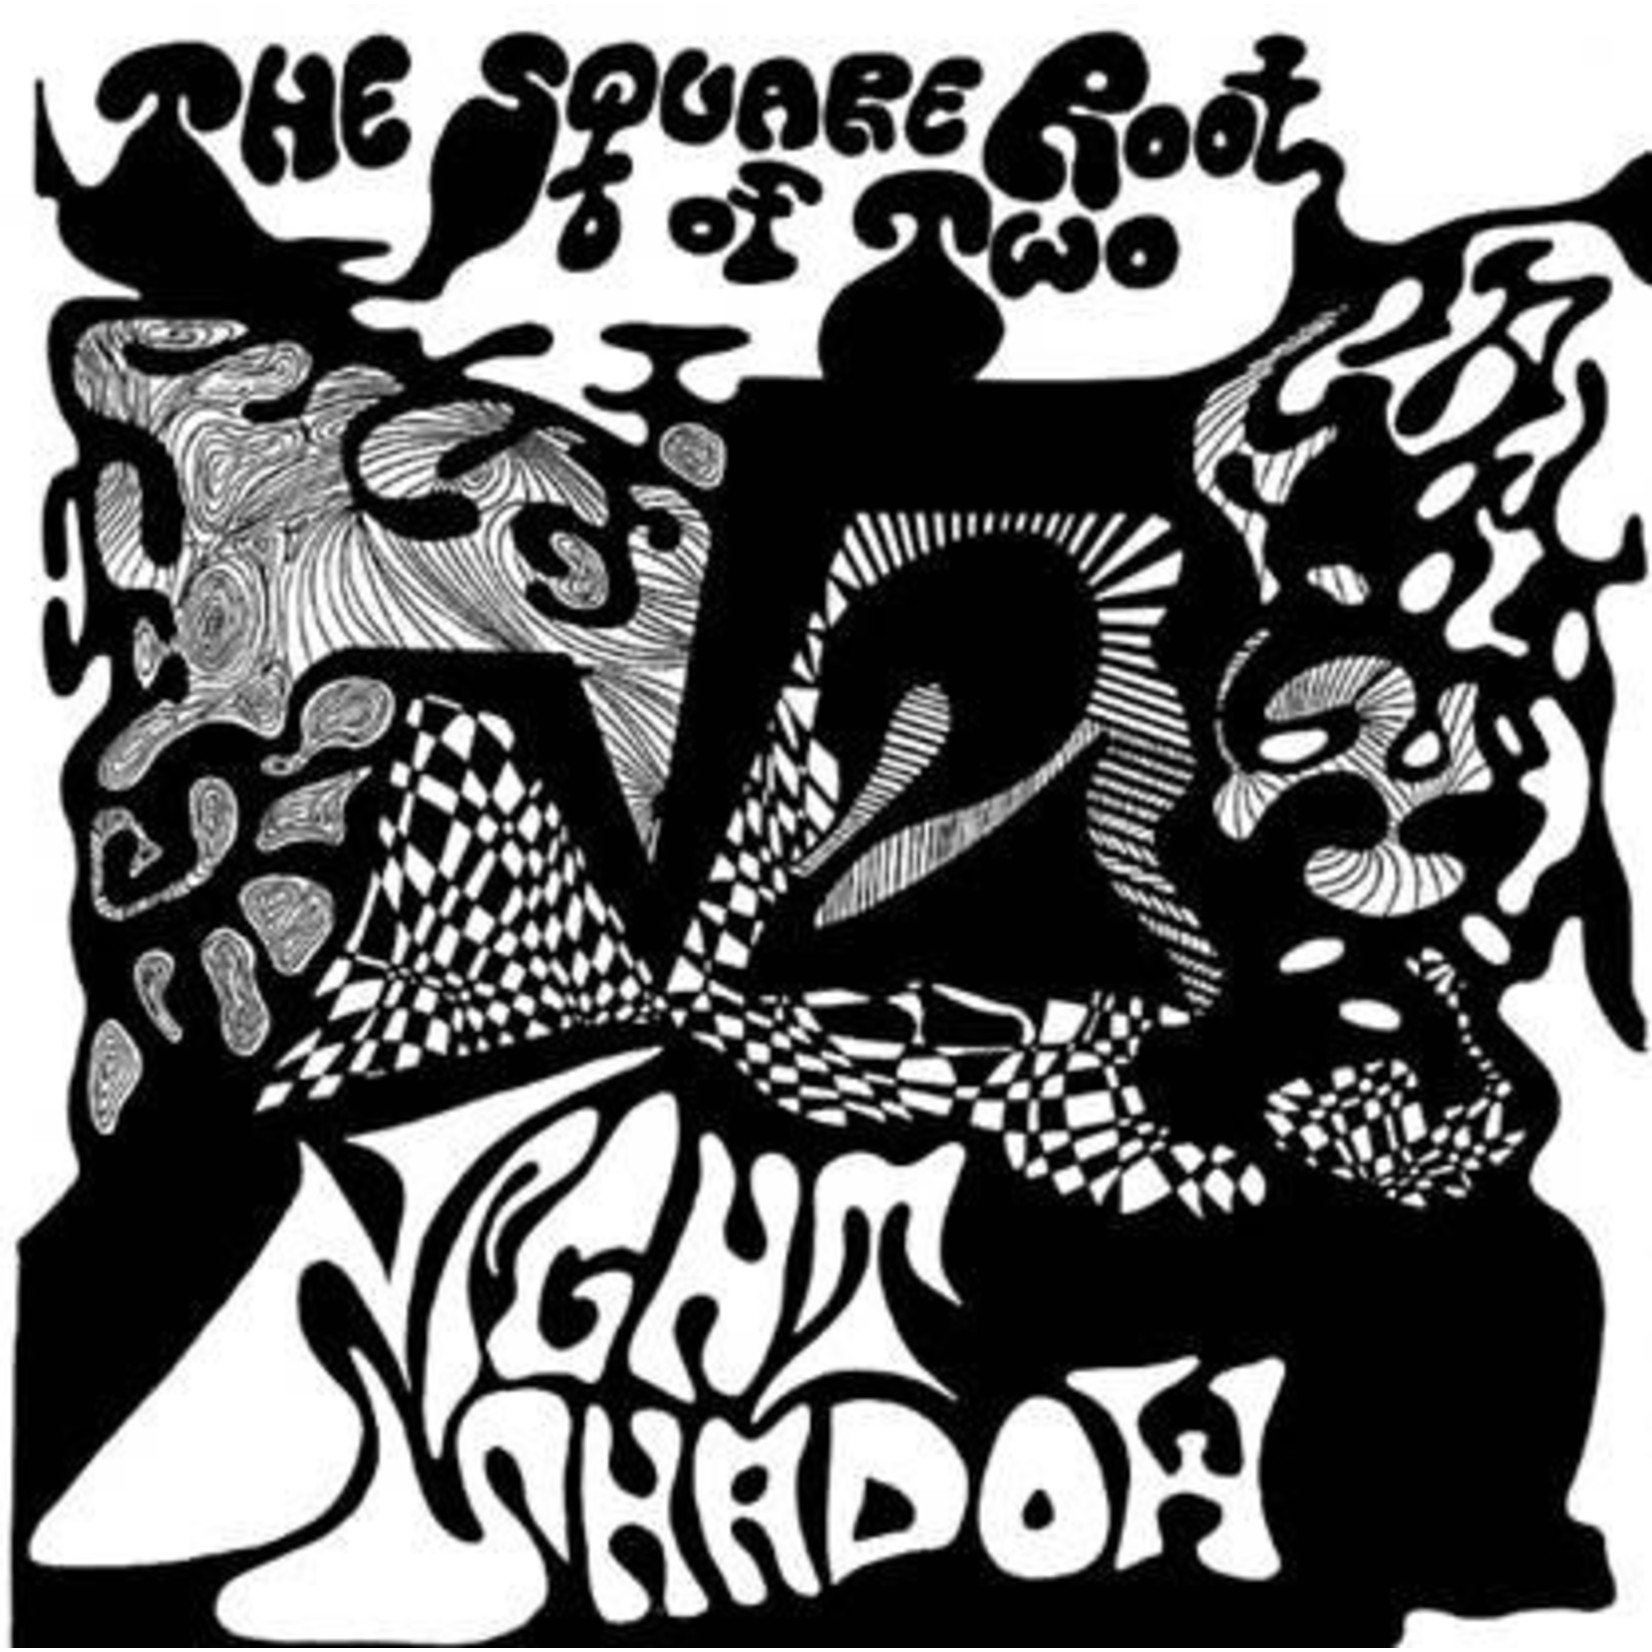 Vinyl Night Shadow - The Square Root Of Two